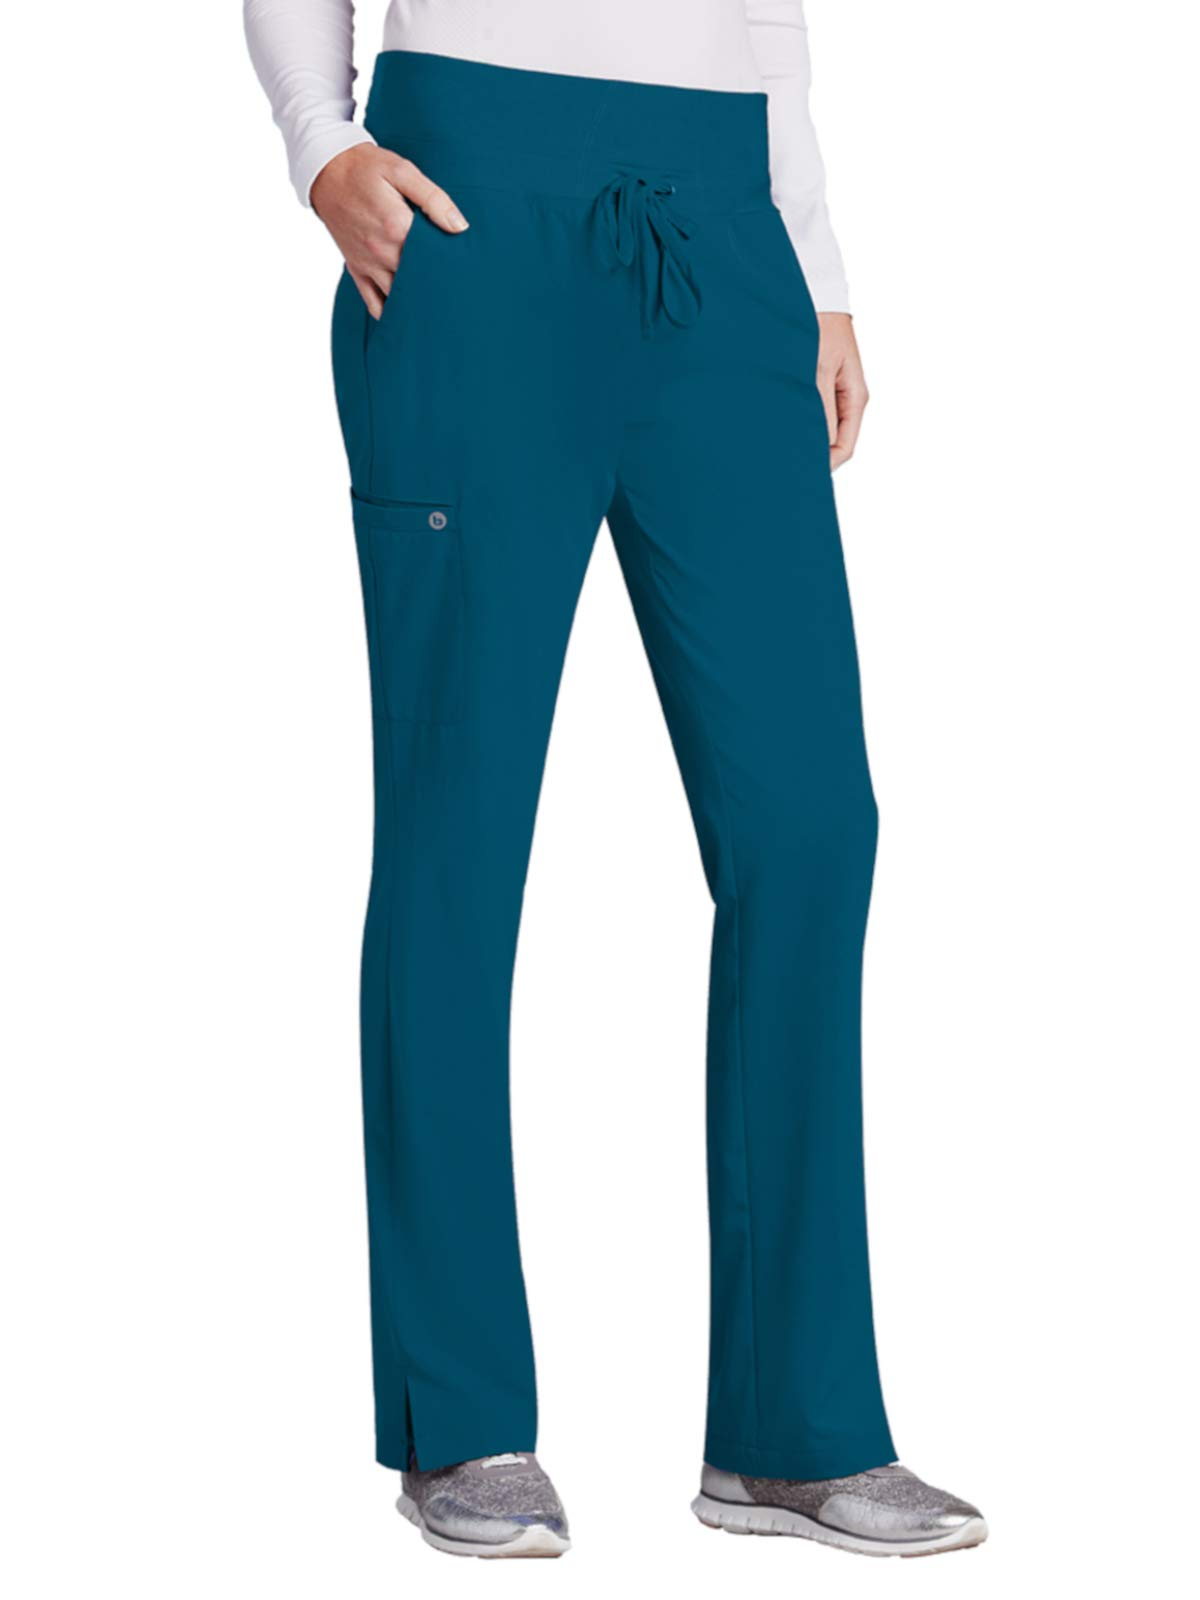 BARCO ONE 4-Pocket Cargo Track Pant for Women– Straight Leg Medical Scrub Pant